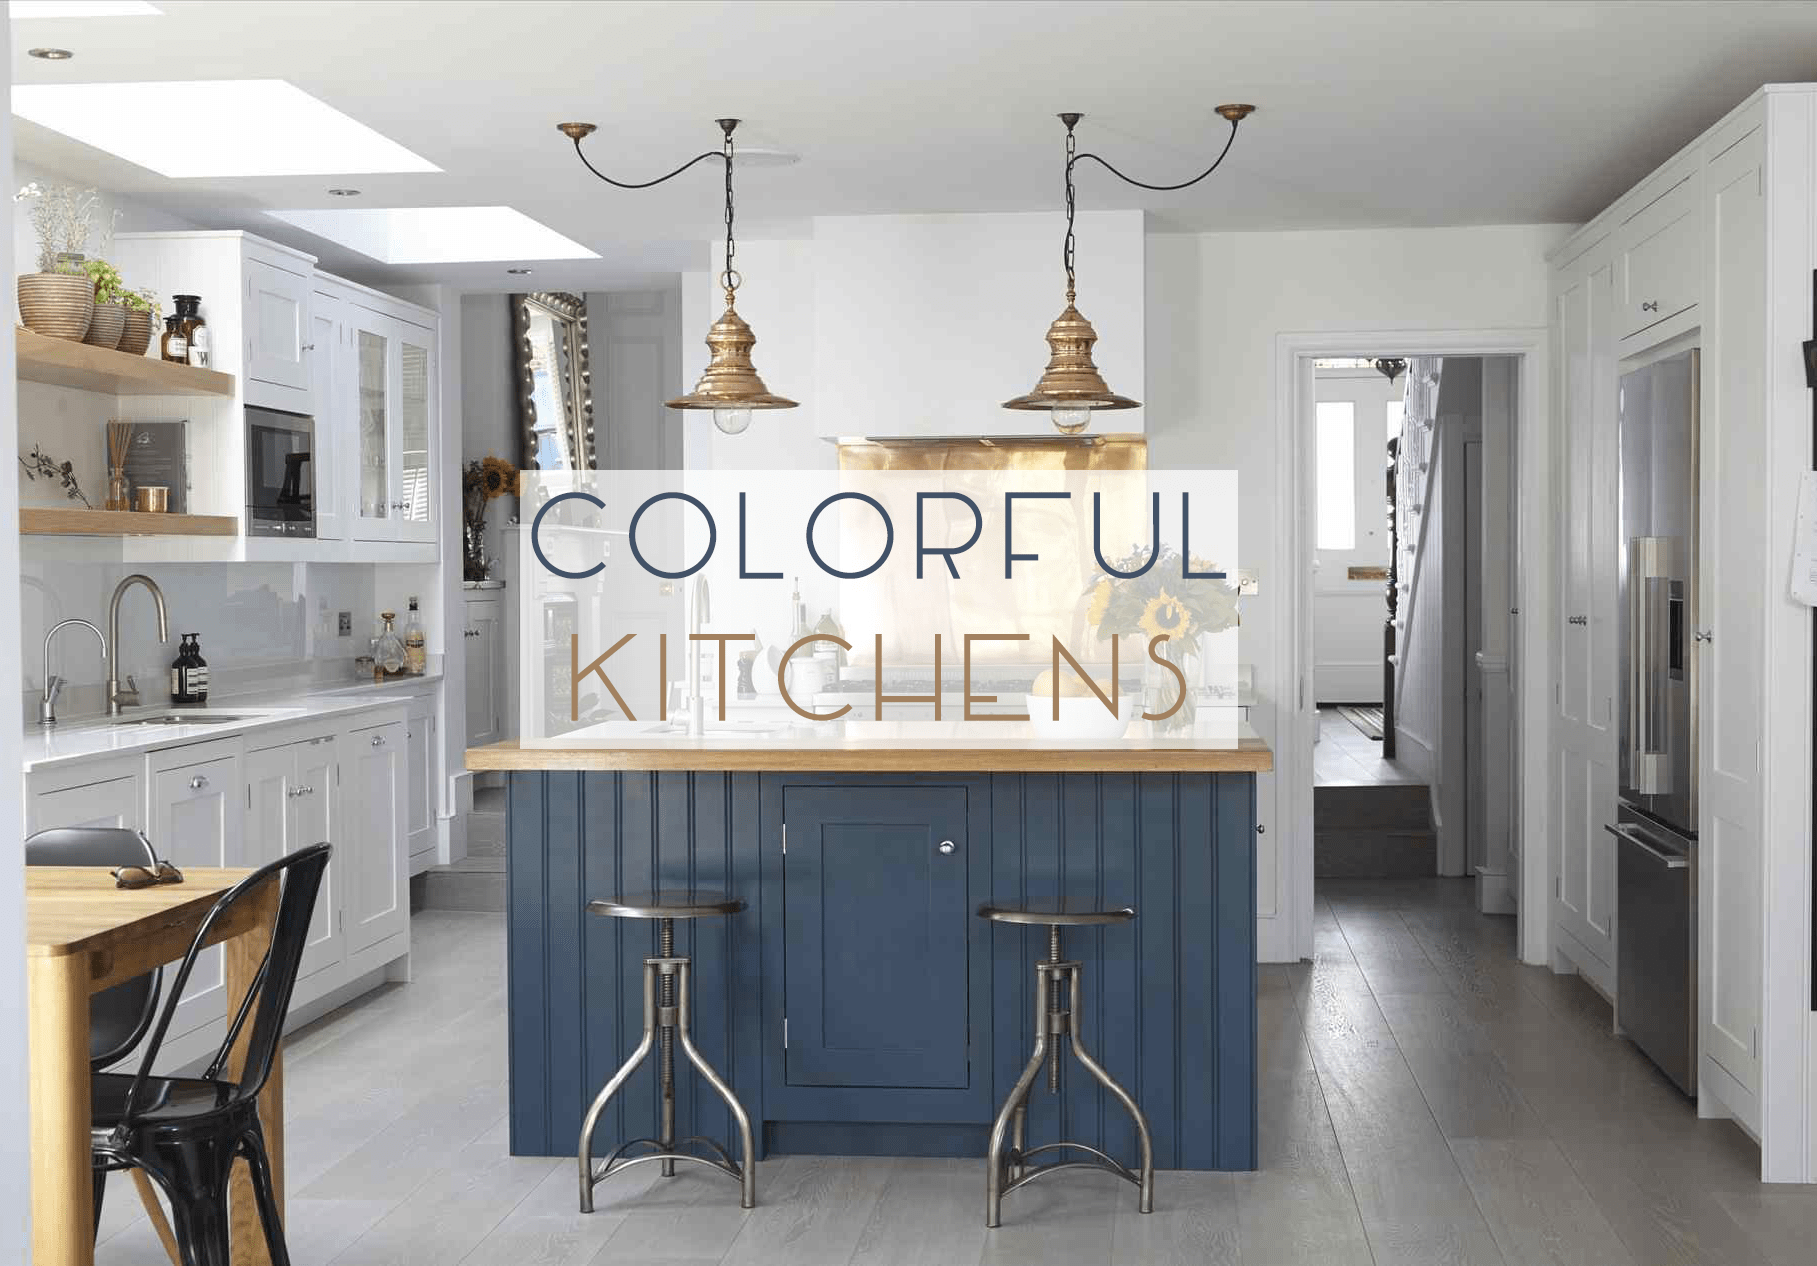 5 Colorful Kitchens We Love [instagram] - Catherine French Design